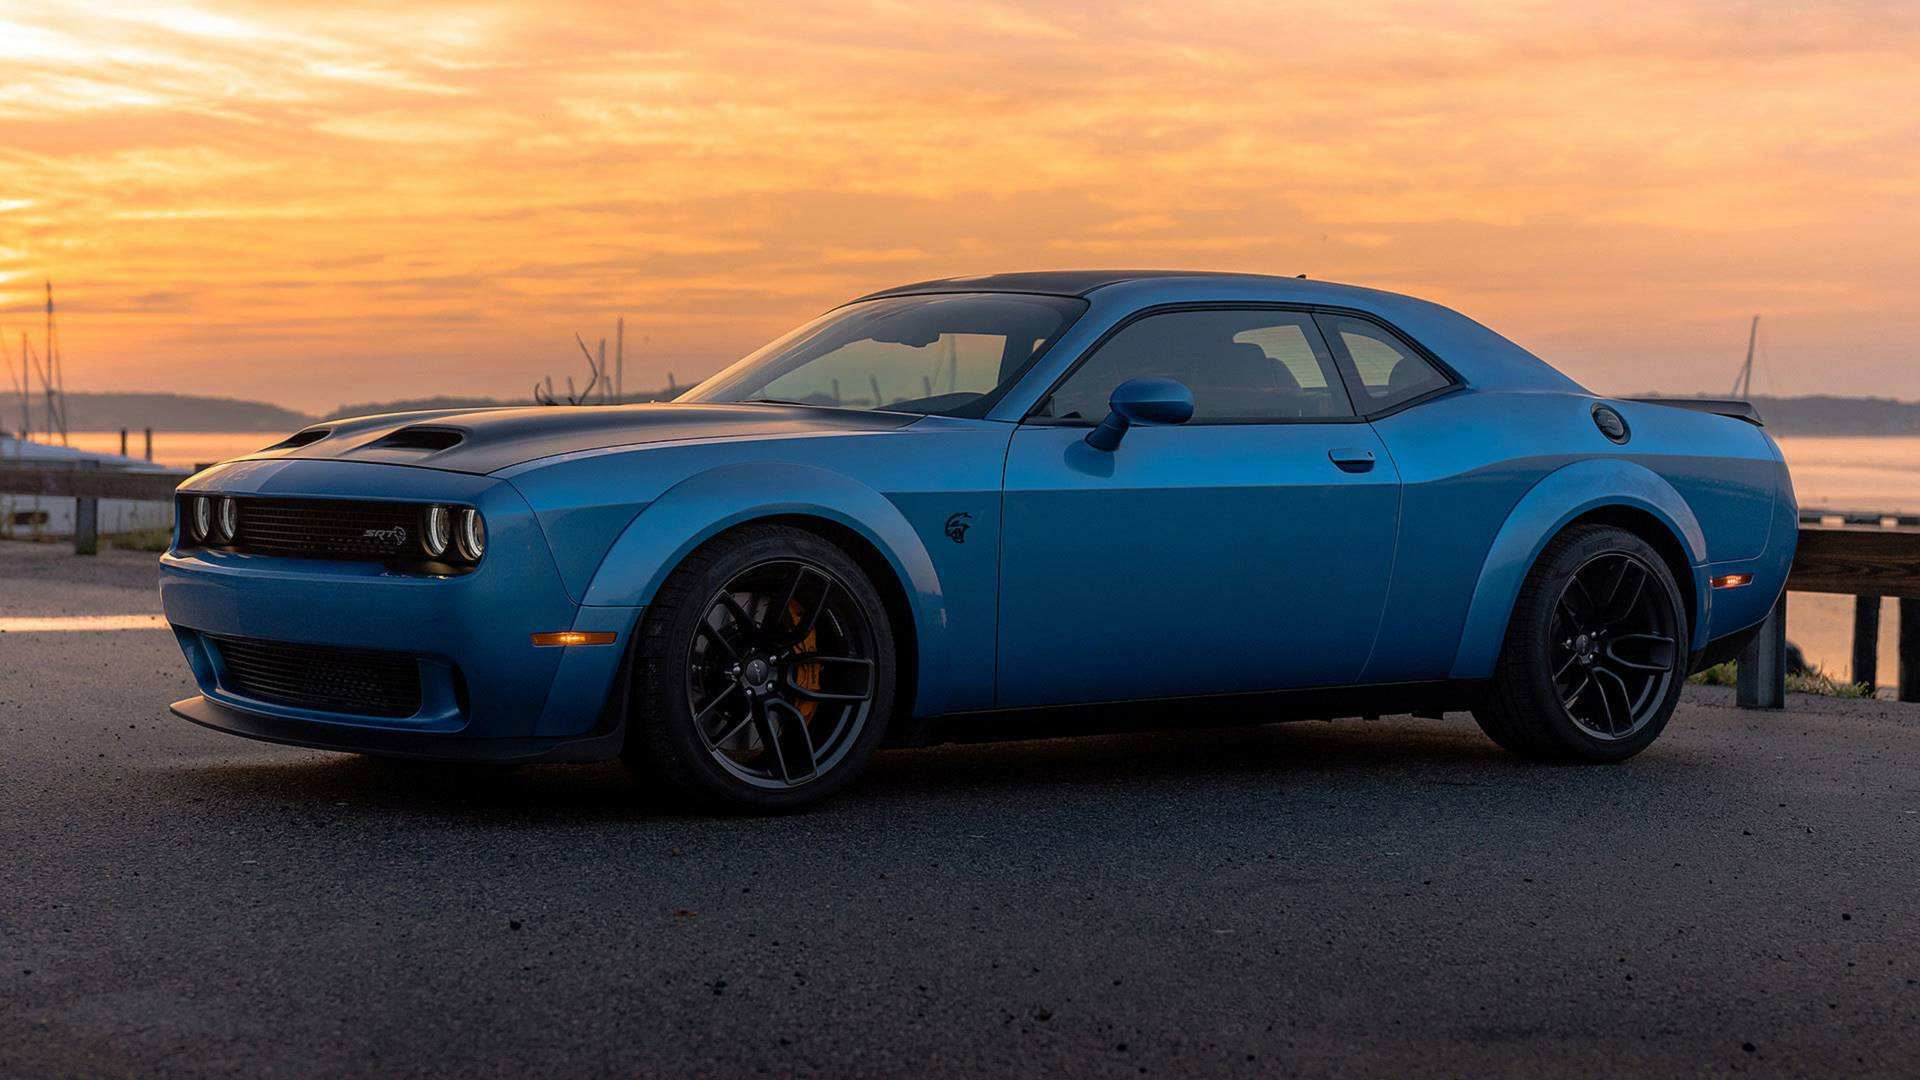 59 Concept of 2019 Dodge Challenger Srt Concept by 2019 Dodge Challenger Srt